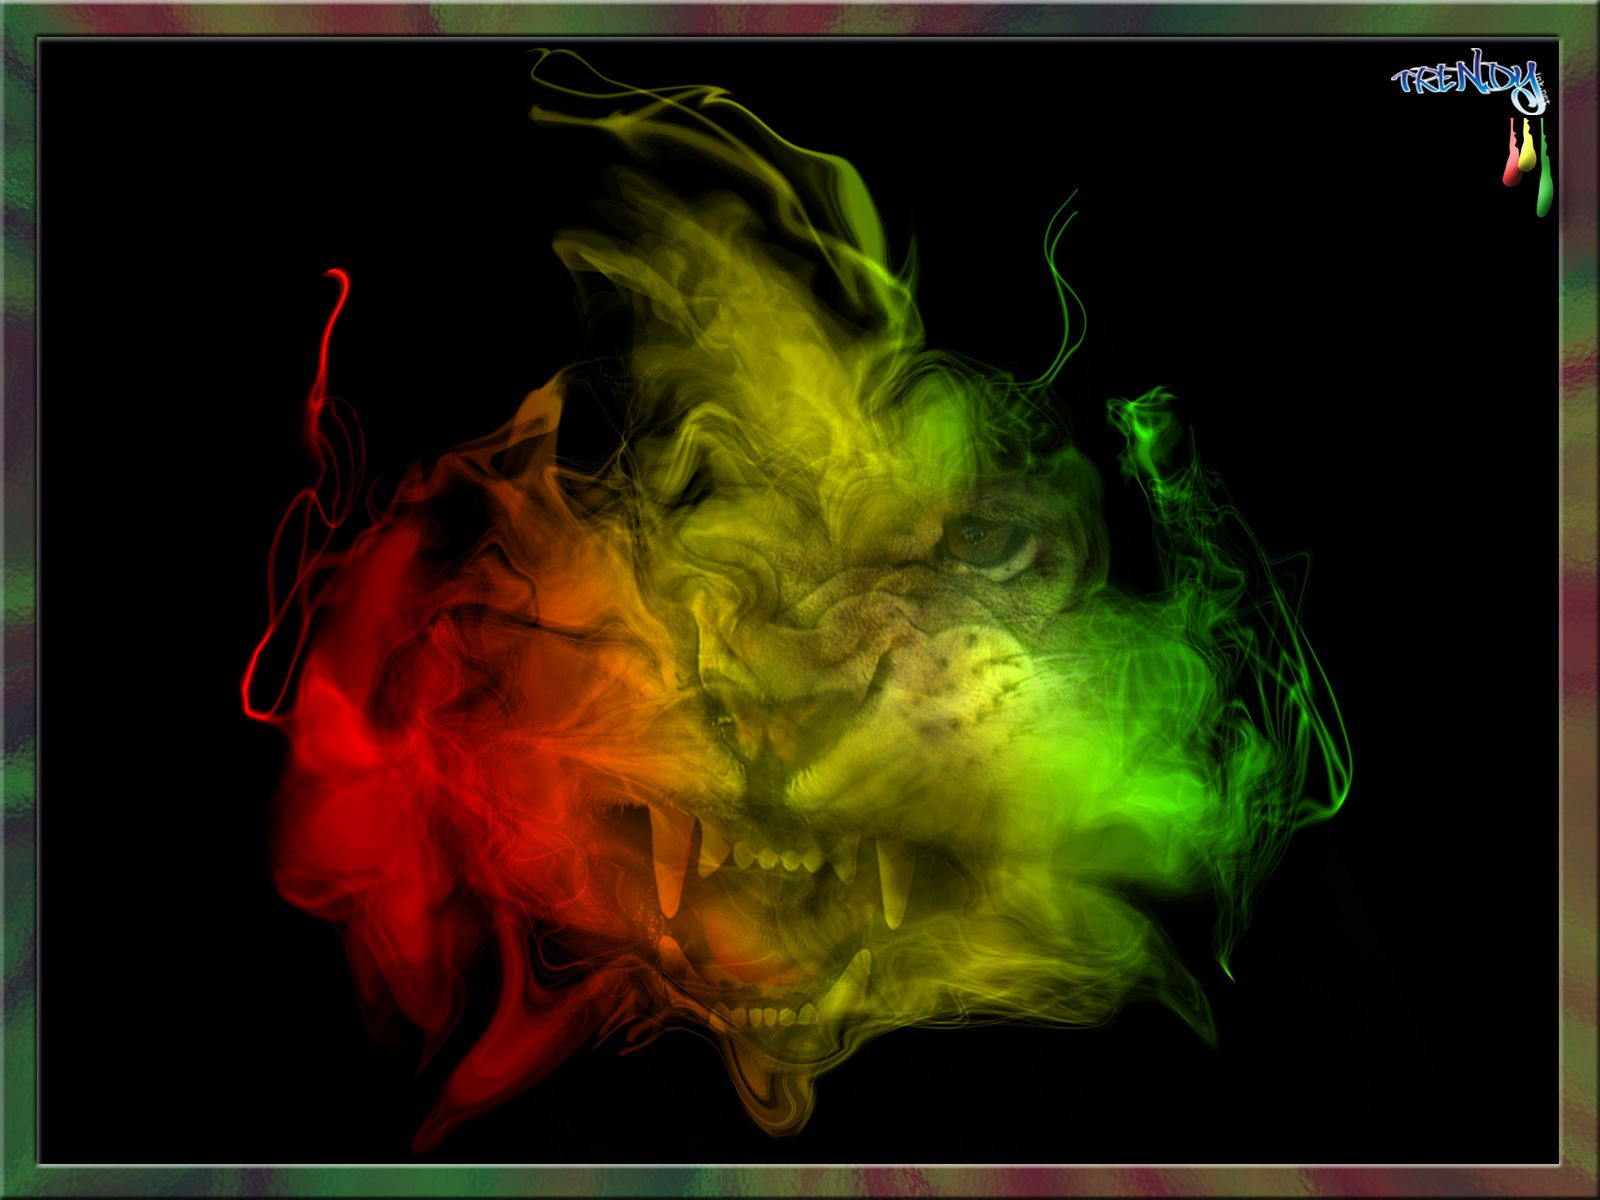 rasta   My Top Collection Rasta lion wallpaper 2. rasta   My Top Collection Rasta lion wallpaper 2   Rastafarian